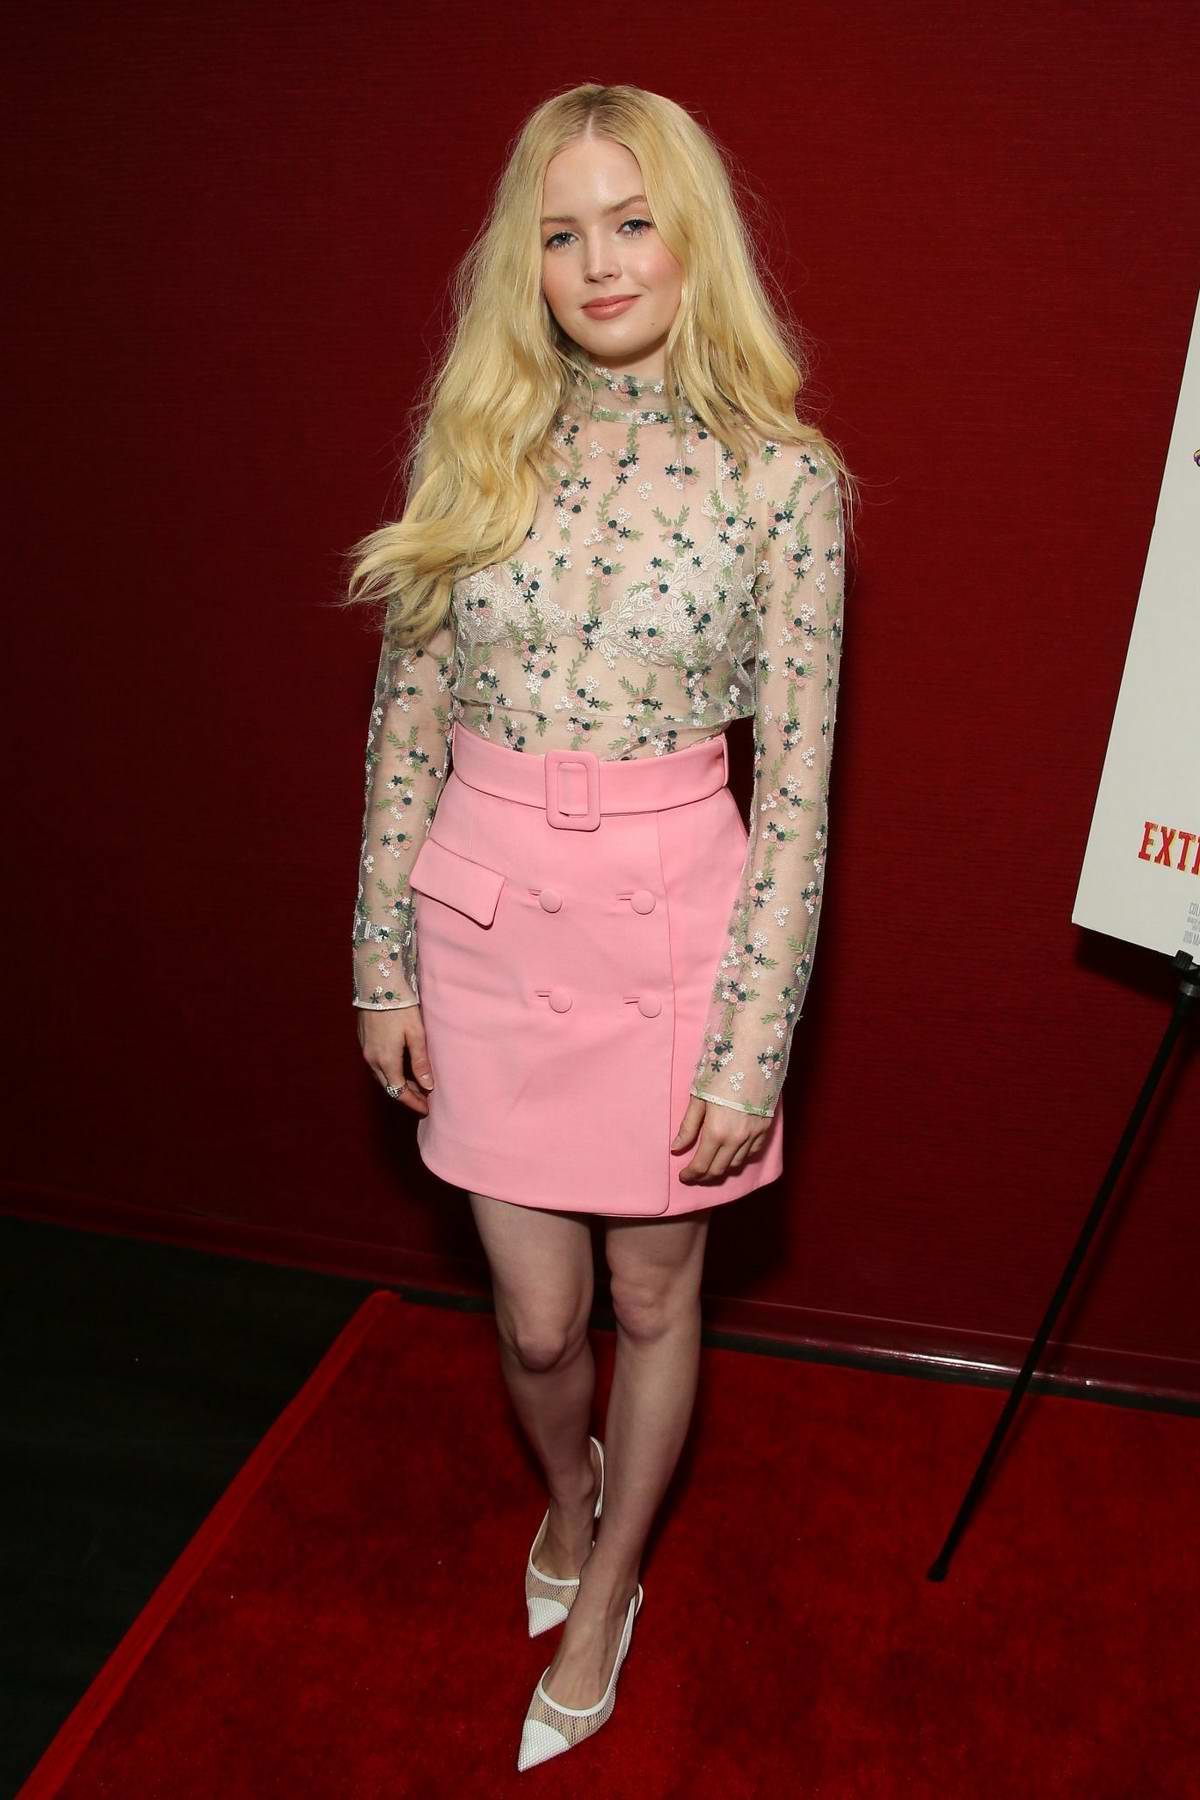 Ellie Bamber attends the LA Premiere of 'Extracurricular Activities' in Santa Monica, California